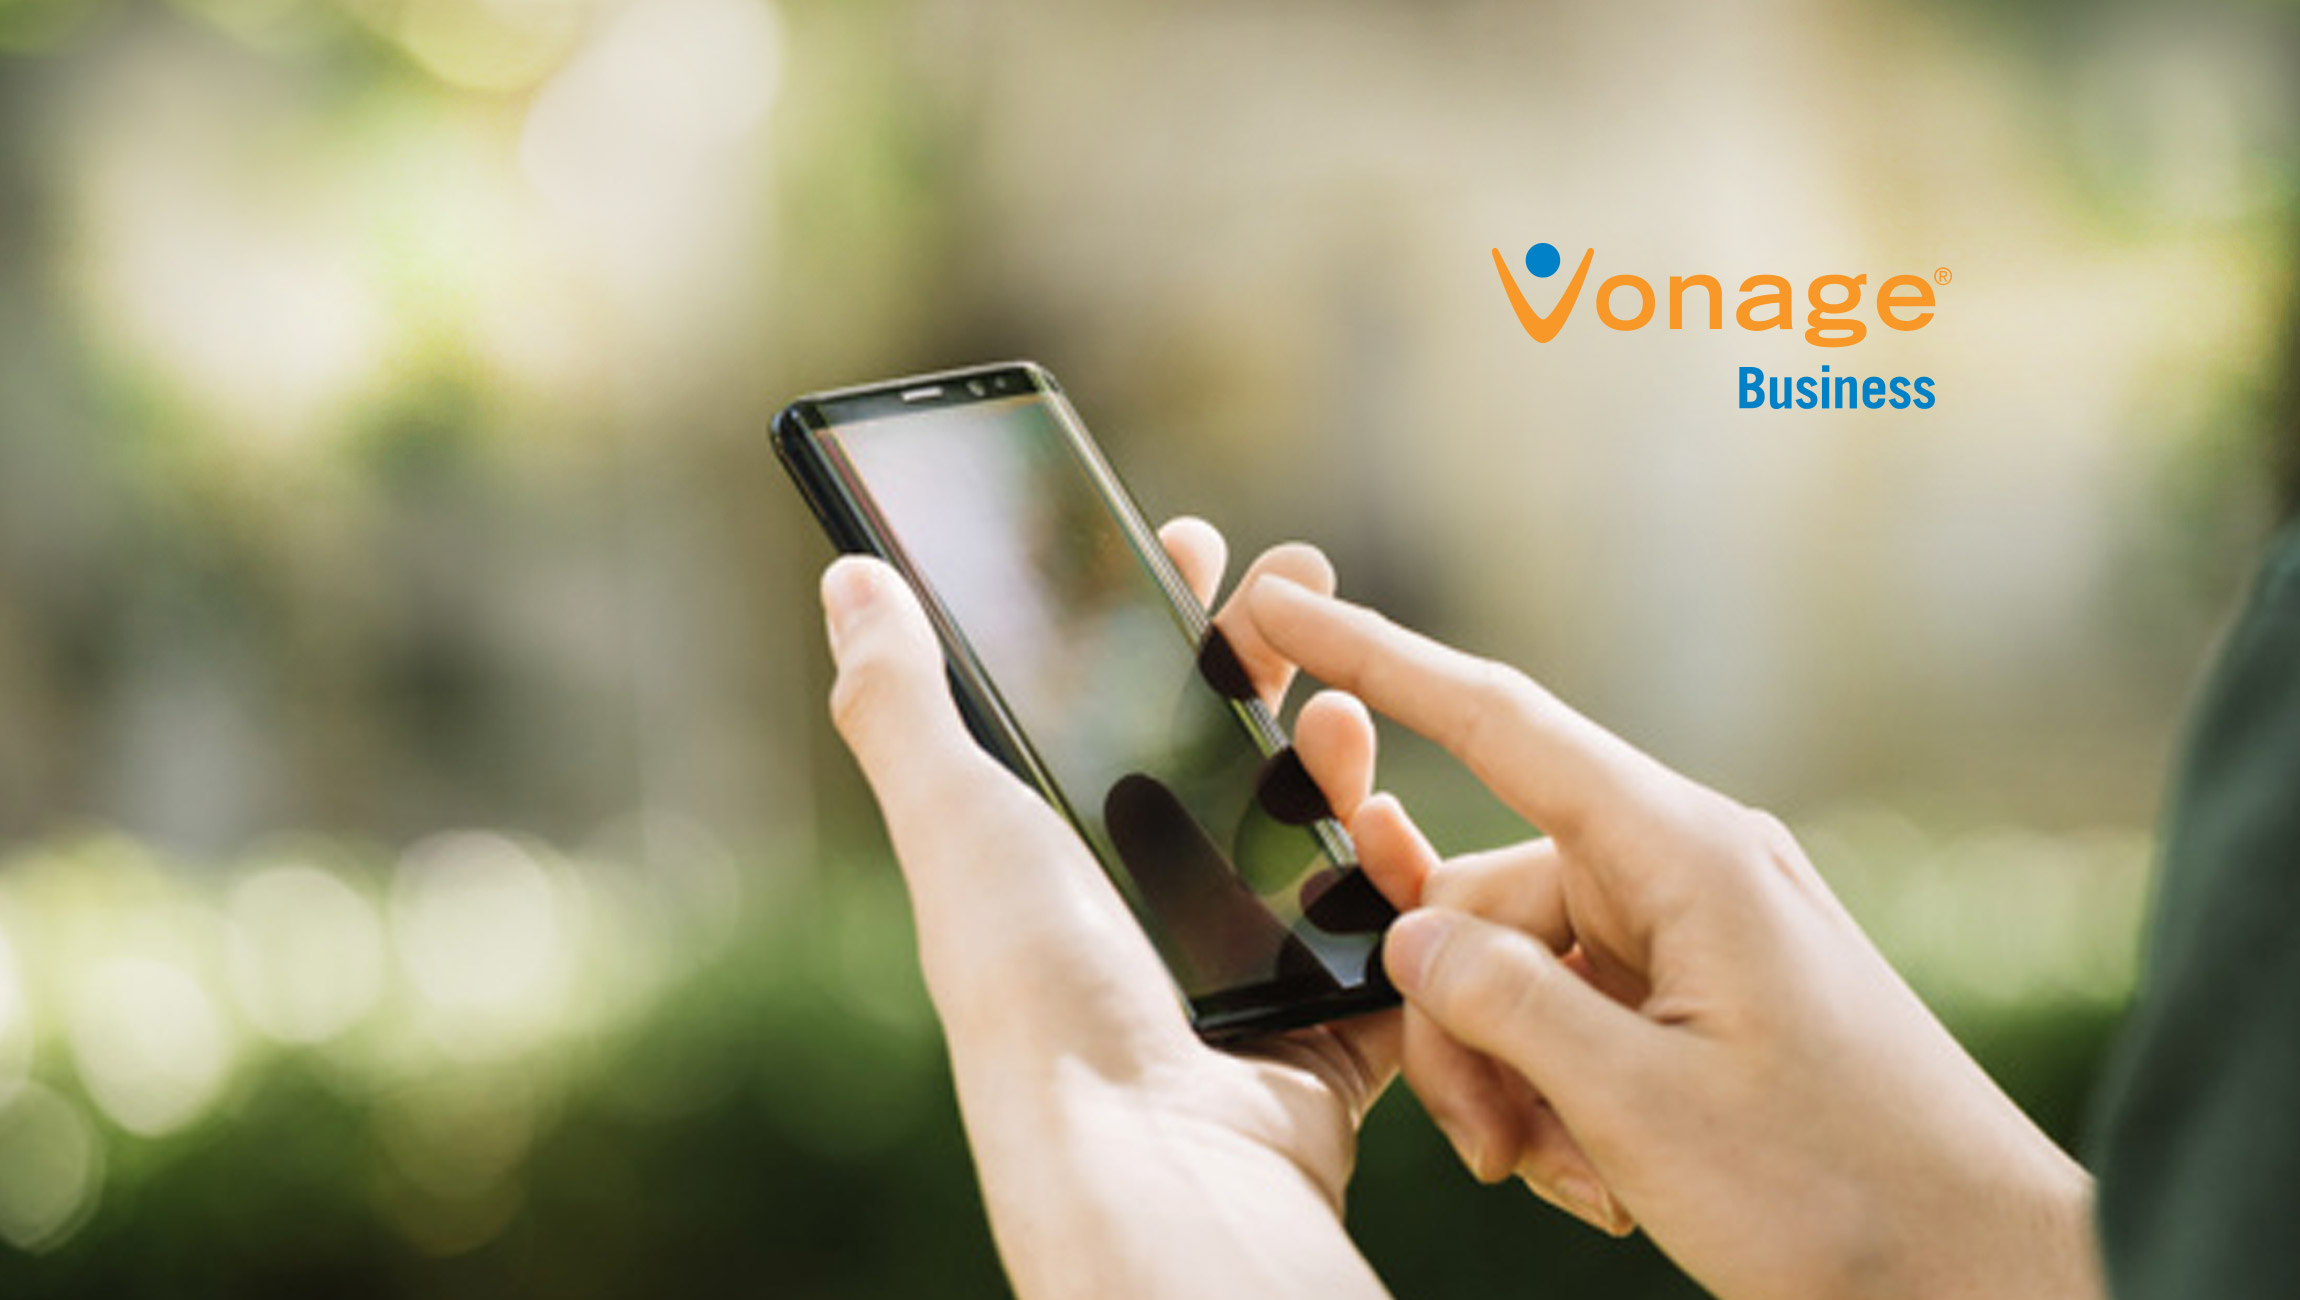 Launch of CX Cloud Express Extends Vonage Business Cloud with Native Contact Center Offering